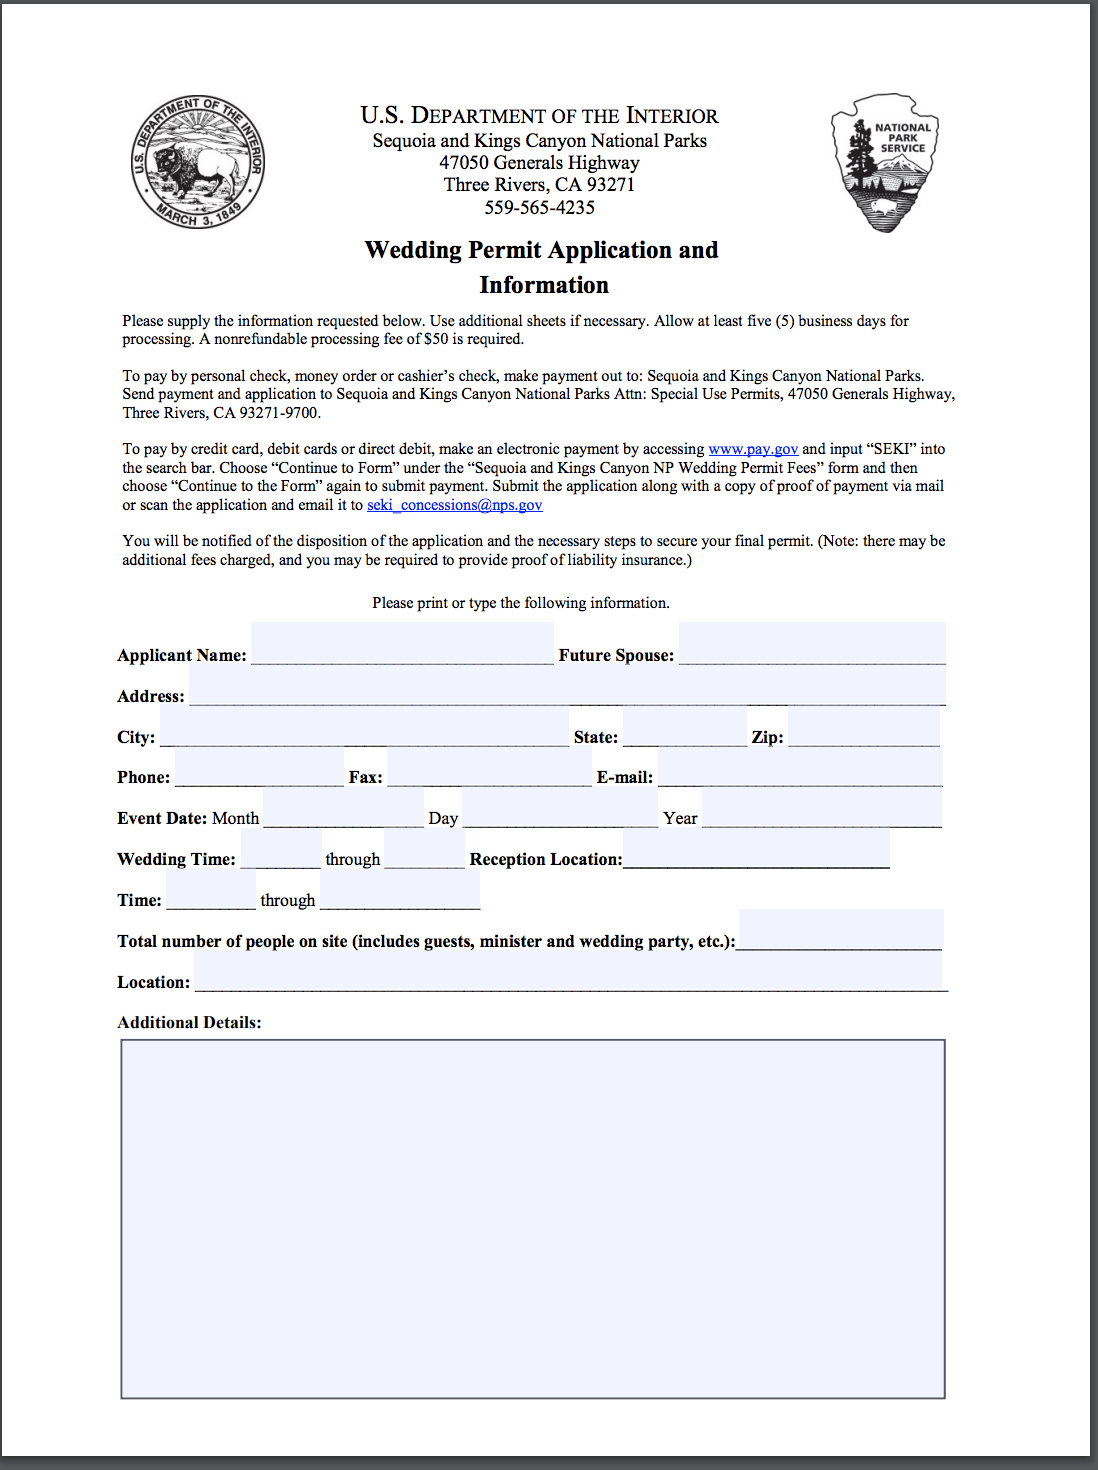 how to get a permit - 1. Go online and fill out a permit application2. Pick a date + choose your ceremony location3. Pay a small fee (online or you can send a check)4. Make sure to submit your application at least 30 days prior to your date (as it can take anywhere from 2-3 weeks for approval)5. Once confirmed make sure to print out a copy and carry it with you during your elopement day